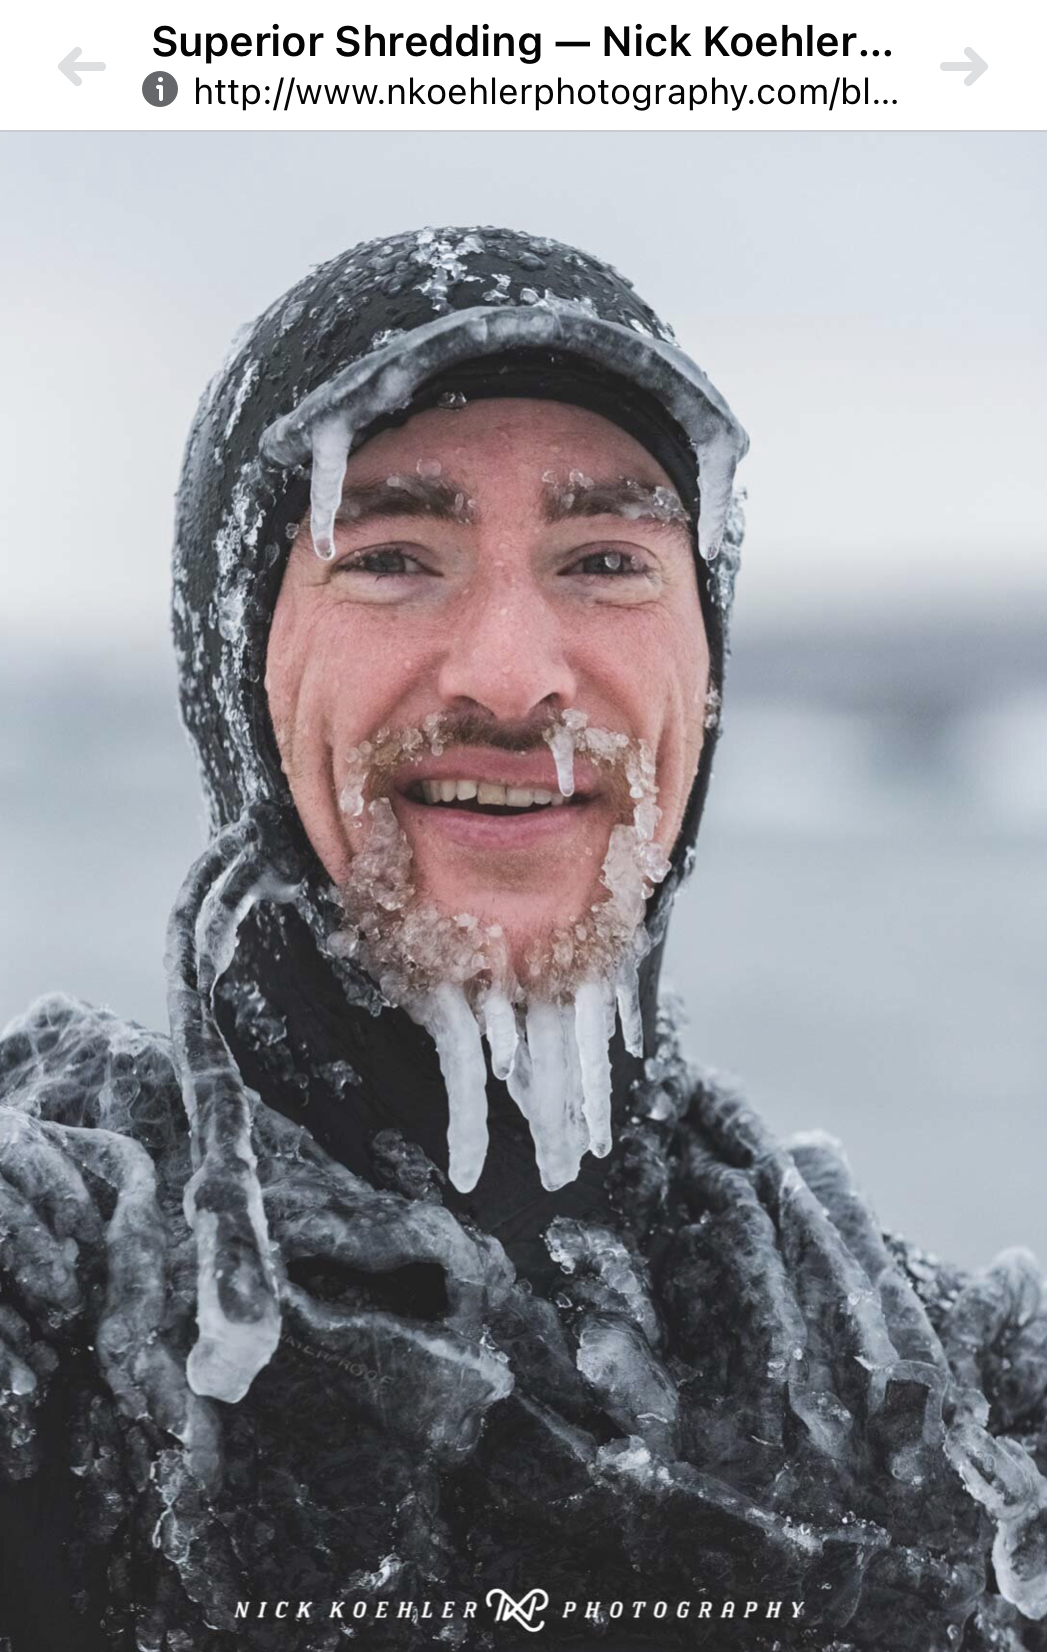 Face in ice and smiles